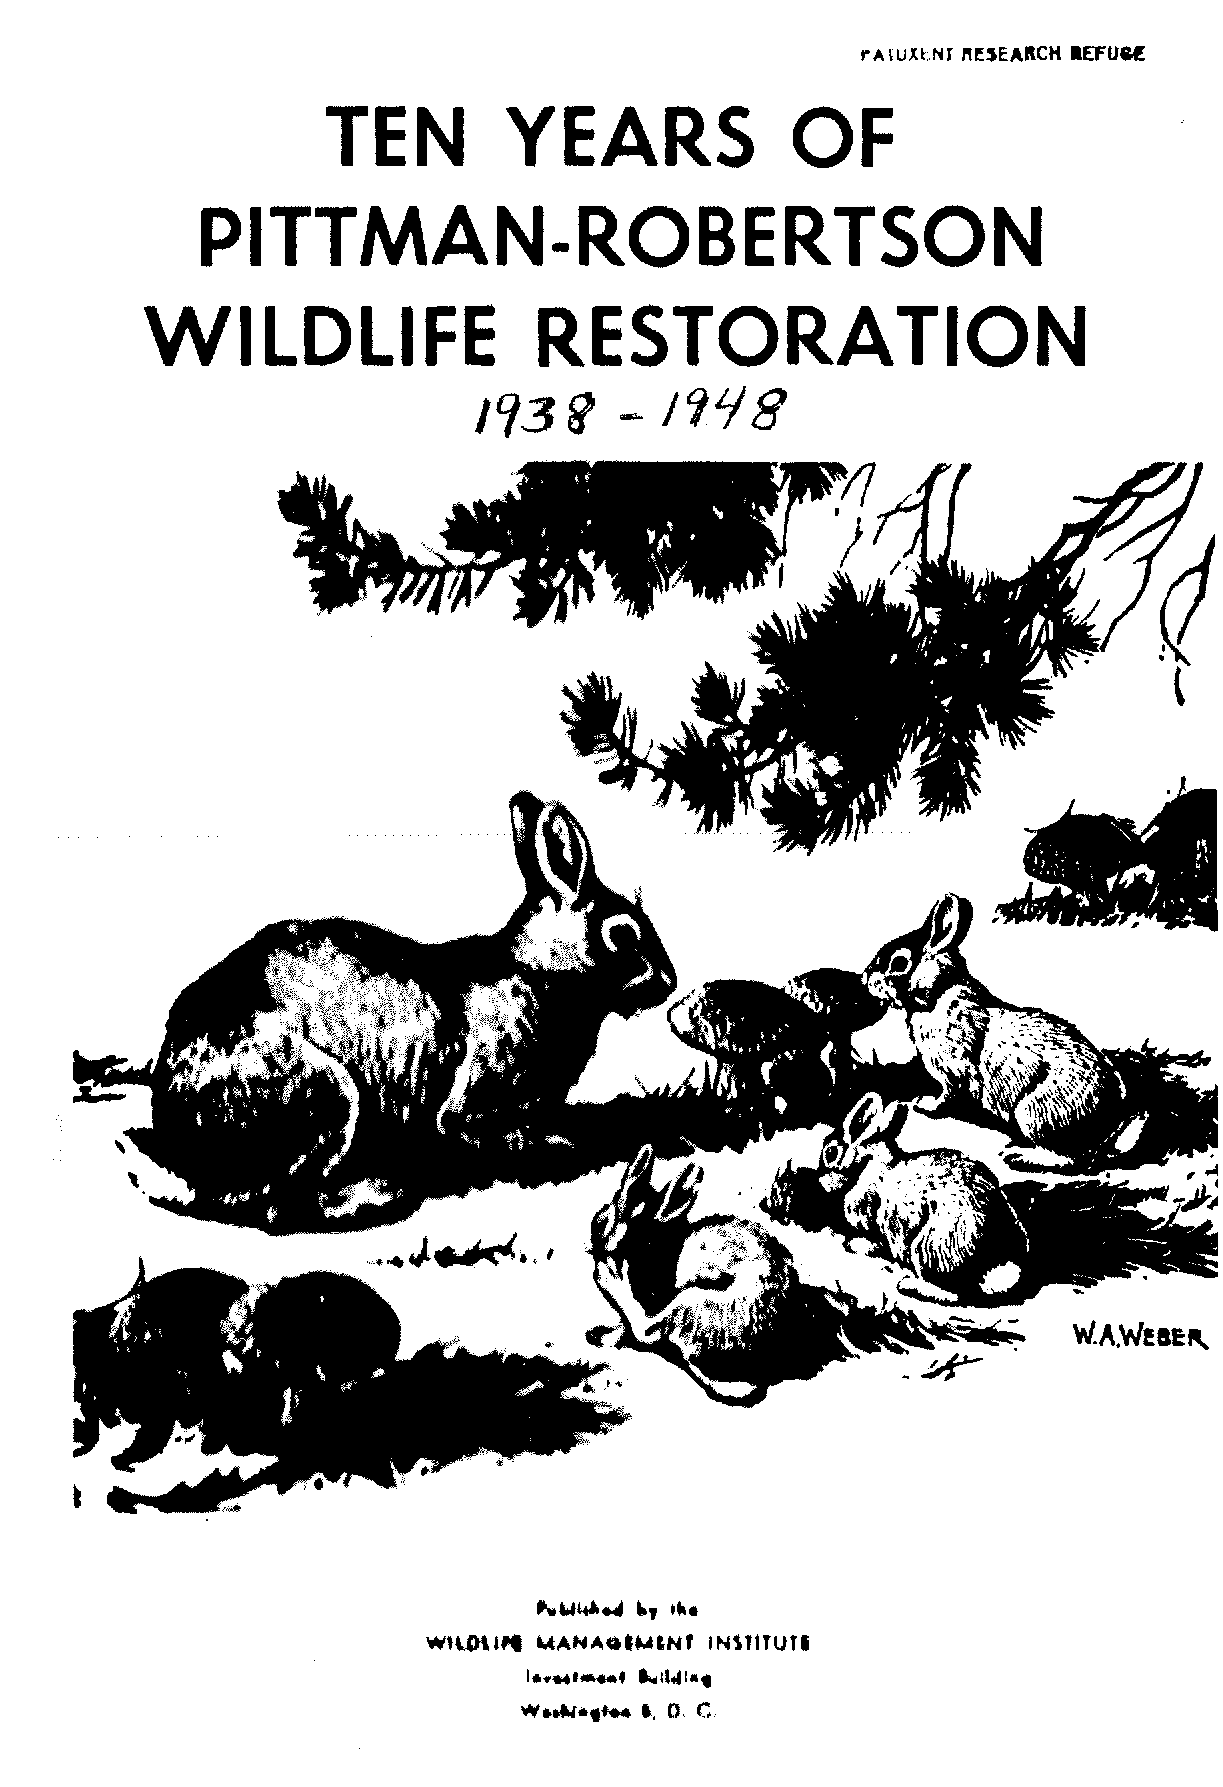 184ea216887 Ten years of Pittman-Robertson wildlife restoration 1938 to 1948 ...